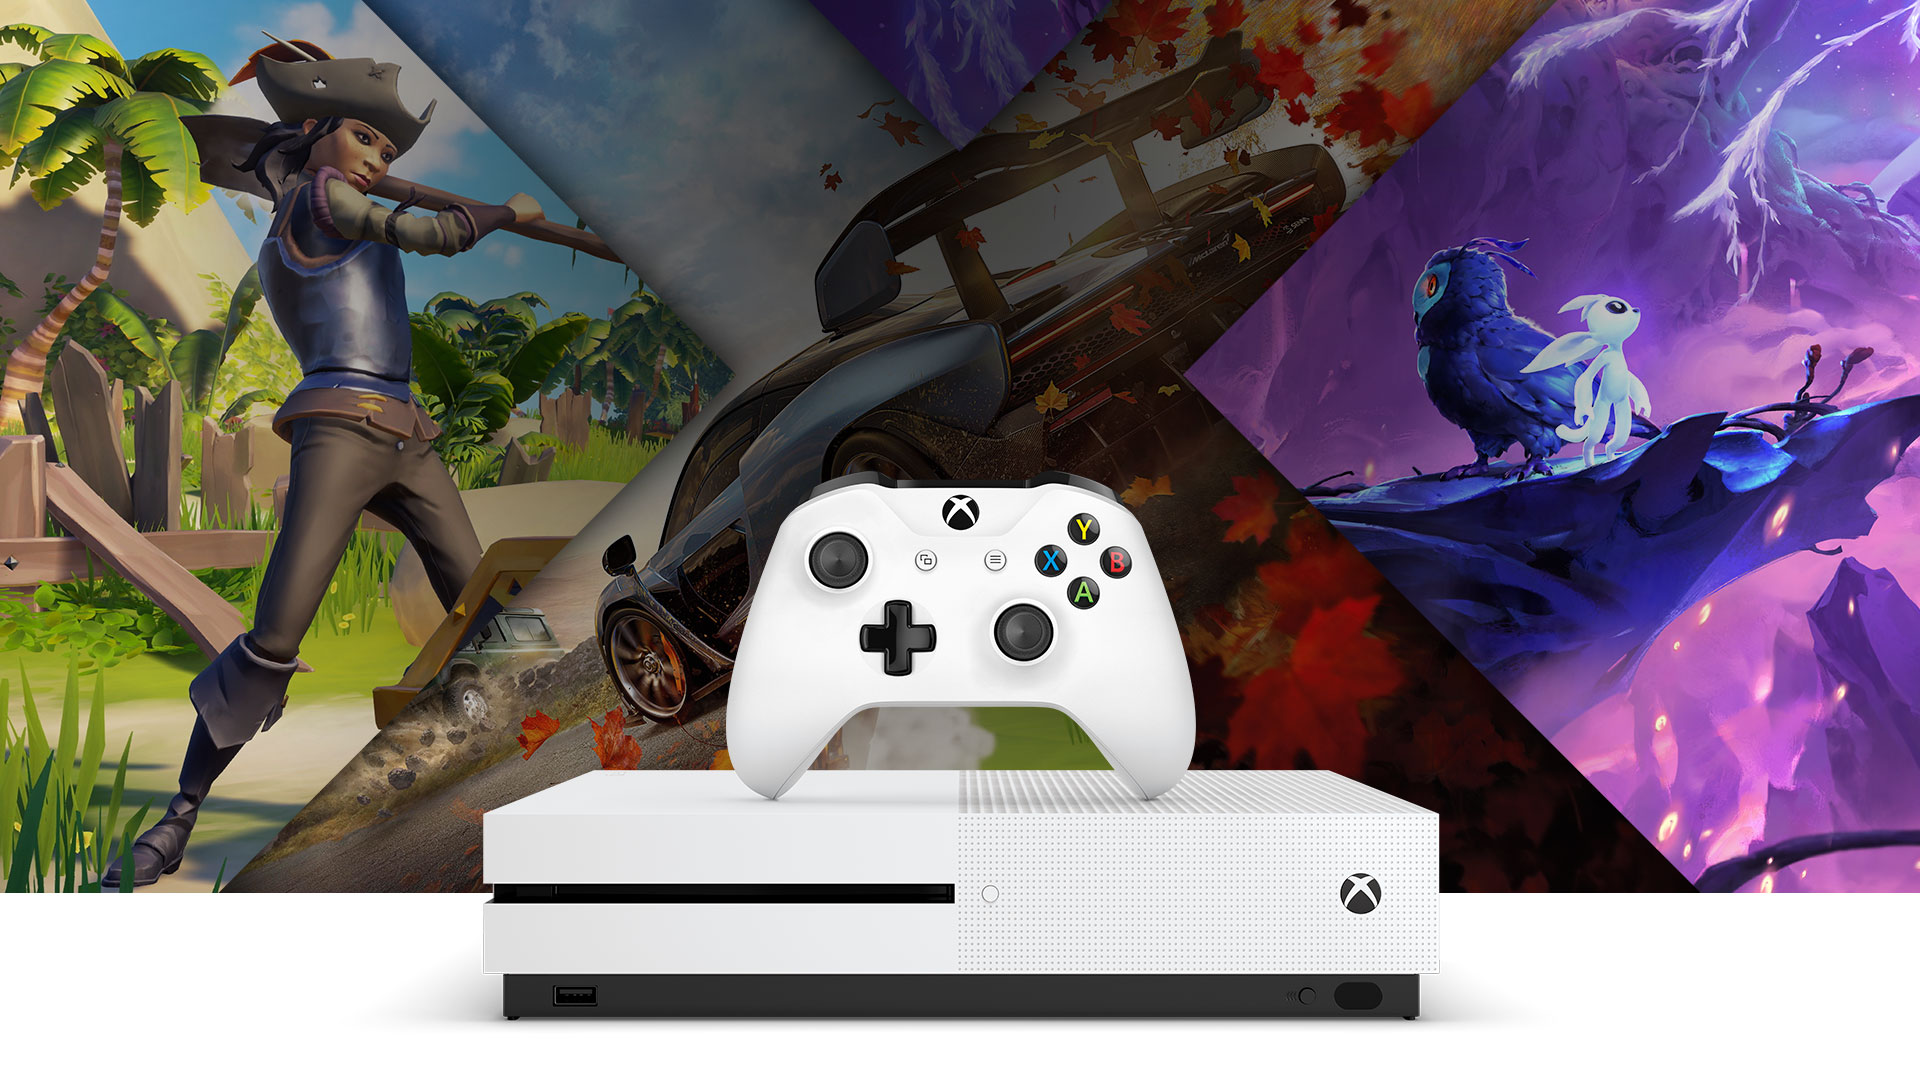 Xbox One S og White Wireless Controller set bagfra omgivet af grafik fra Sea of Thieves, Forza Horizon 4, Ori and the Will of Wisps